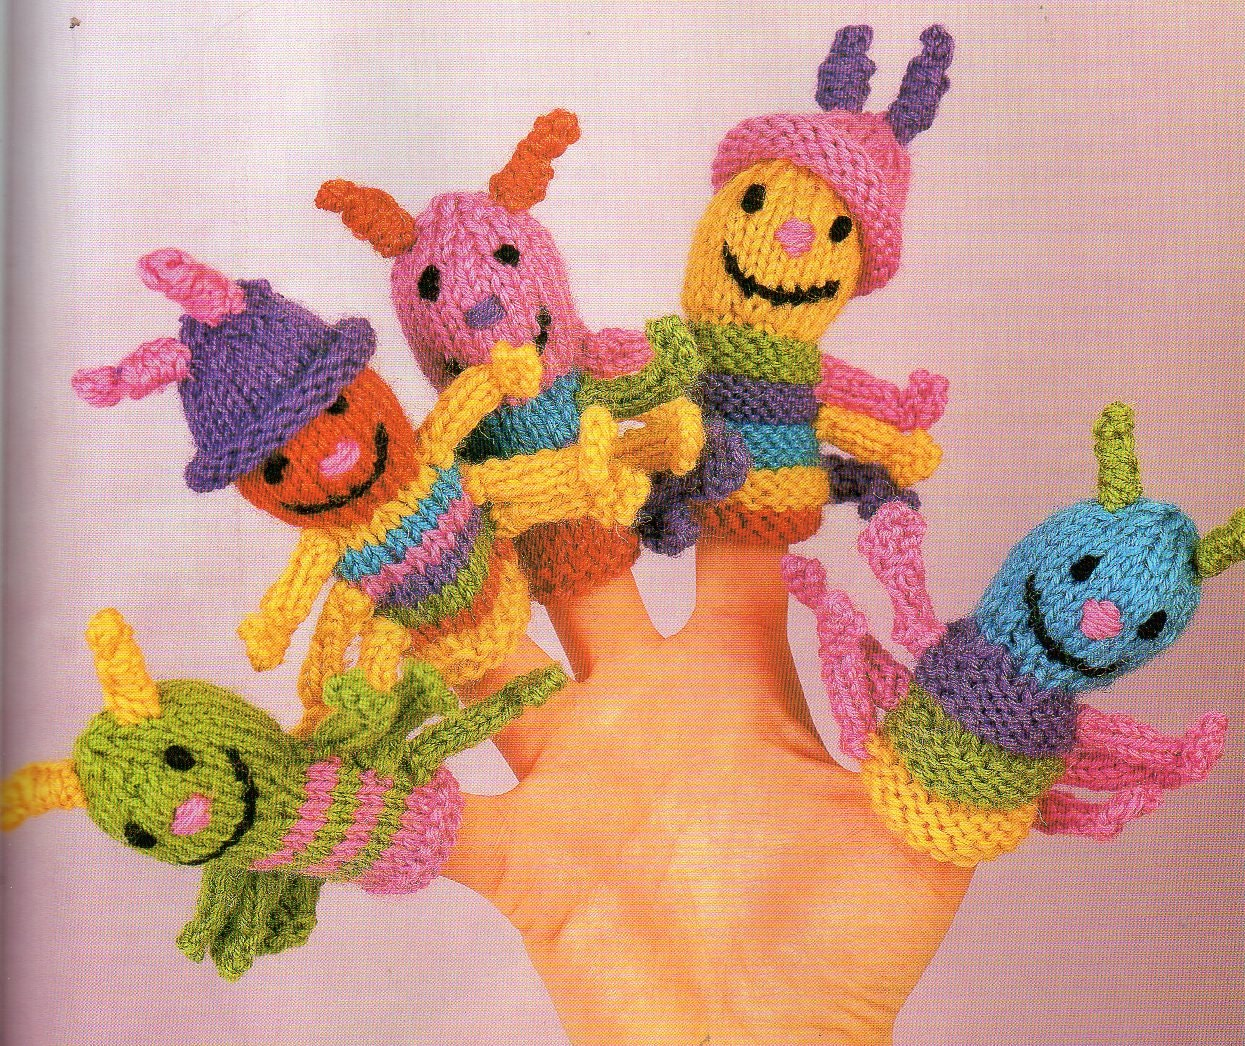 12 Knitted Finger Puppet Patterns - The Funky Stitch